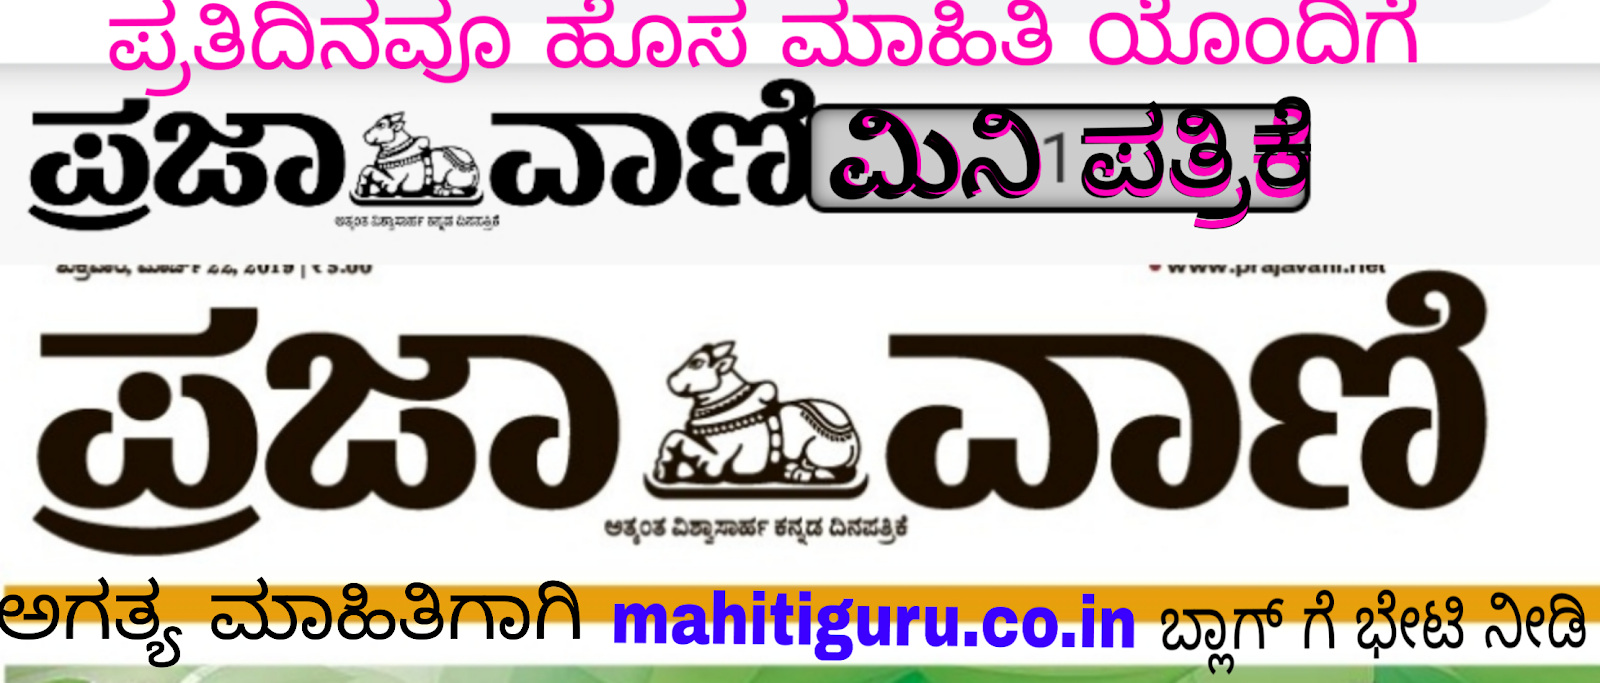 29-06-19 Today mini prajavani